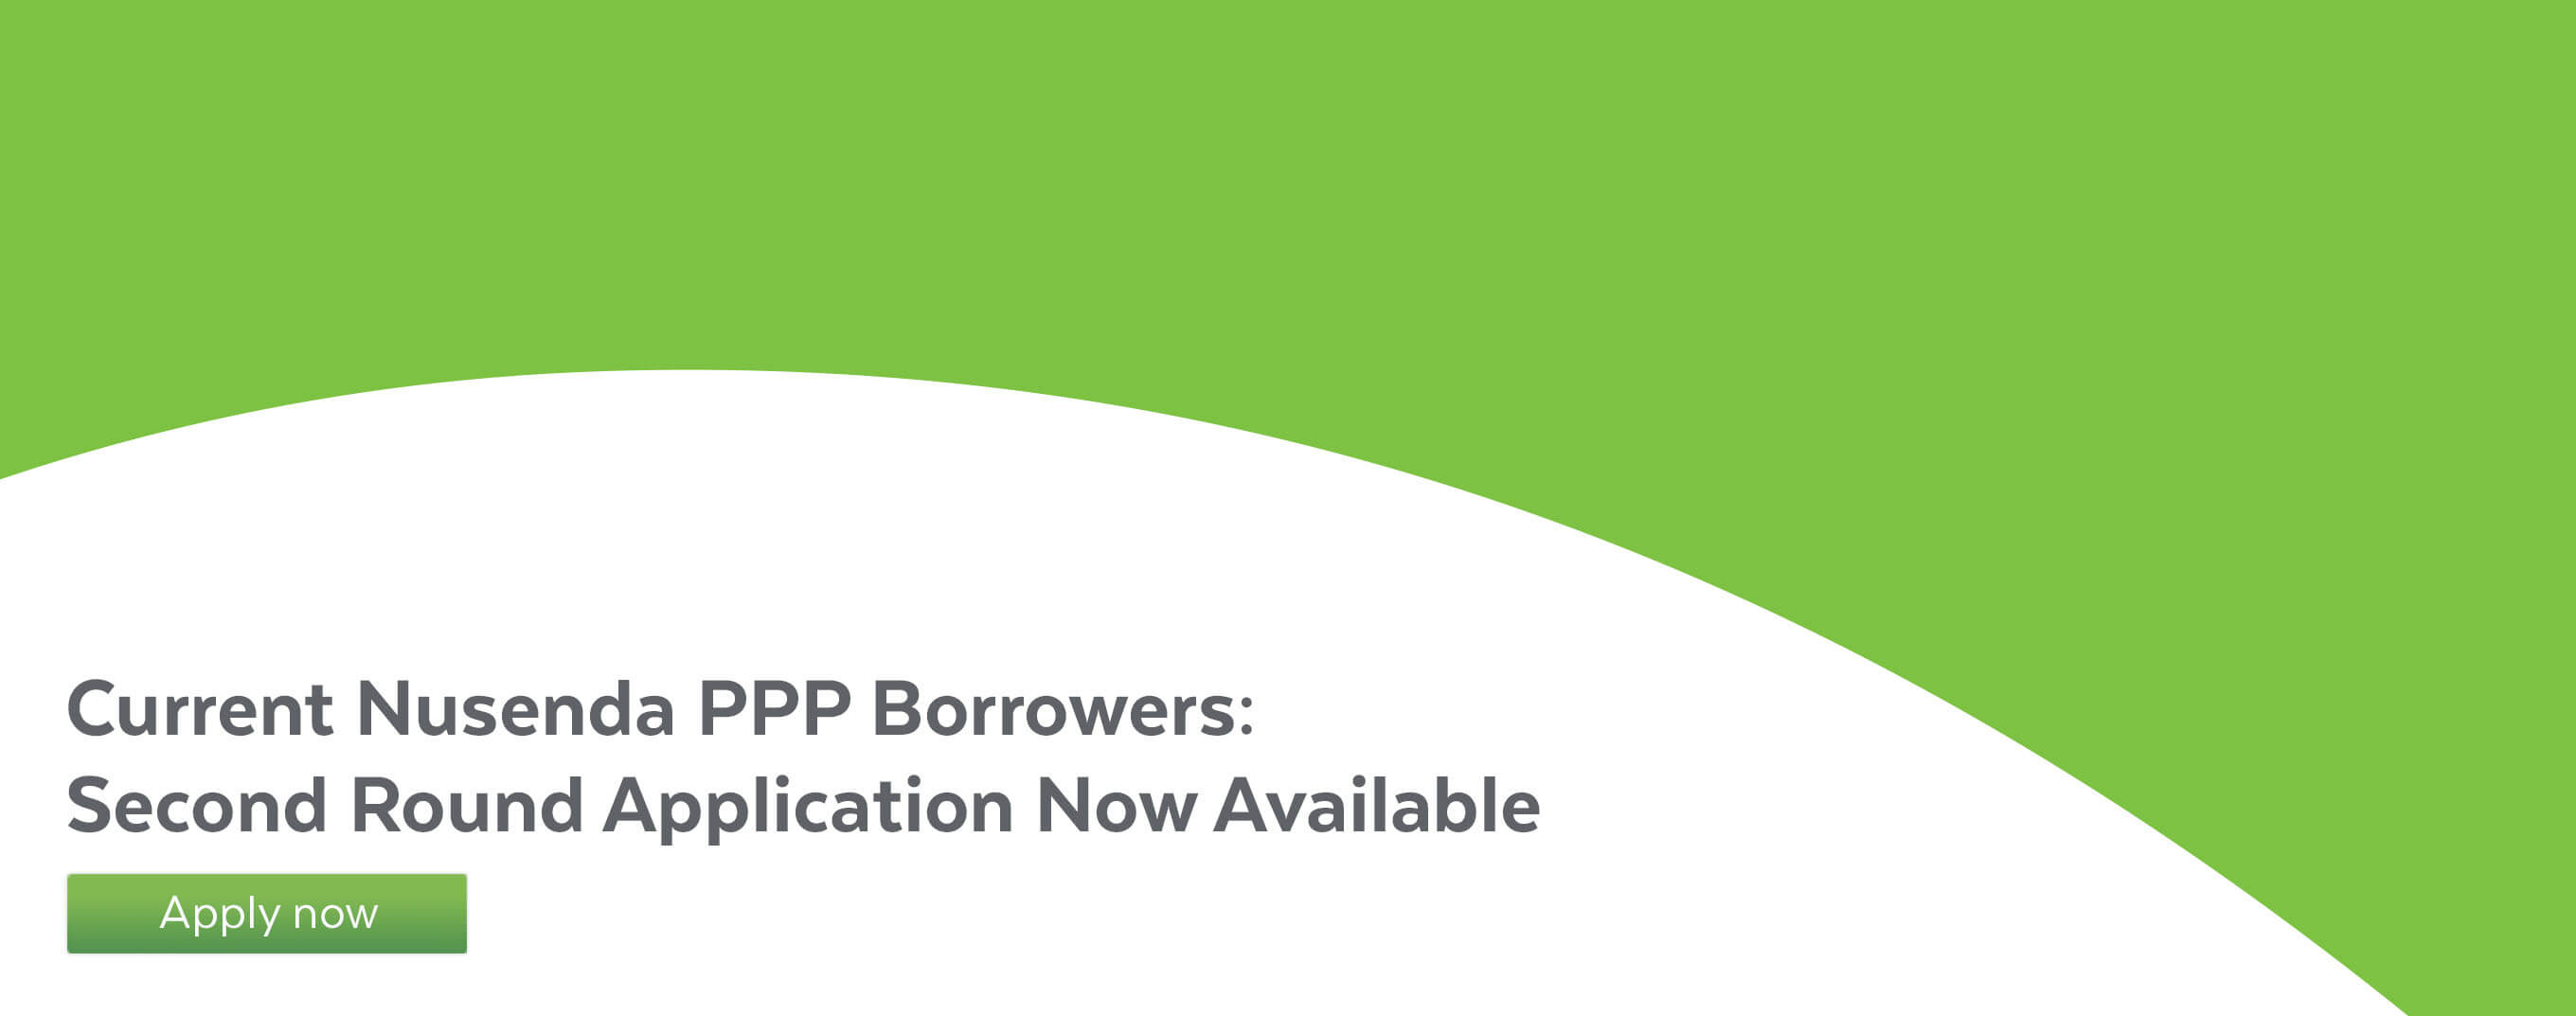 Current Nusenda PPP Borrowers: Second Round Application Now Available